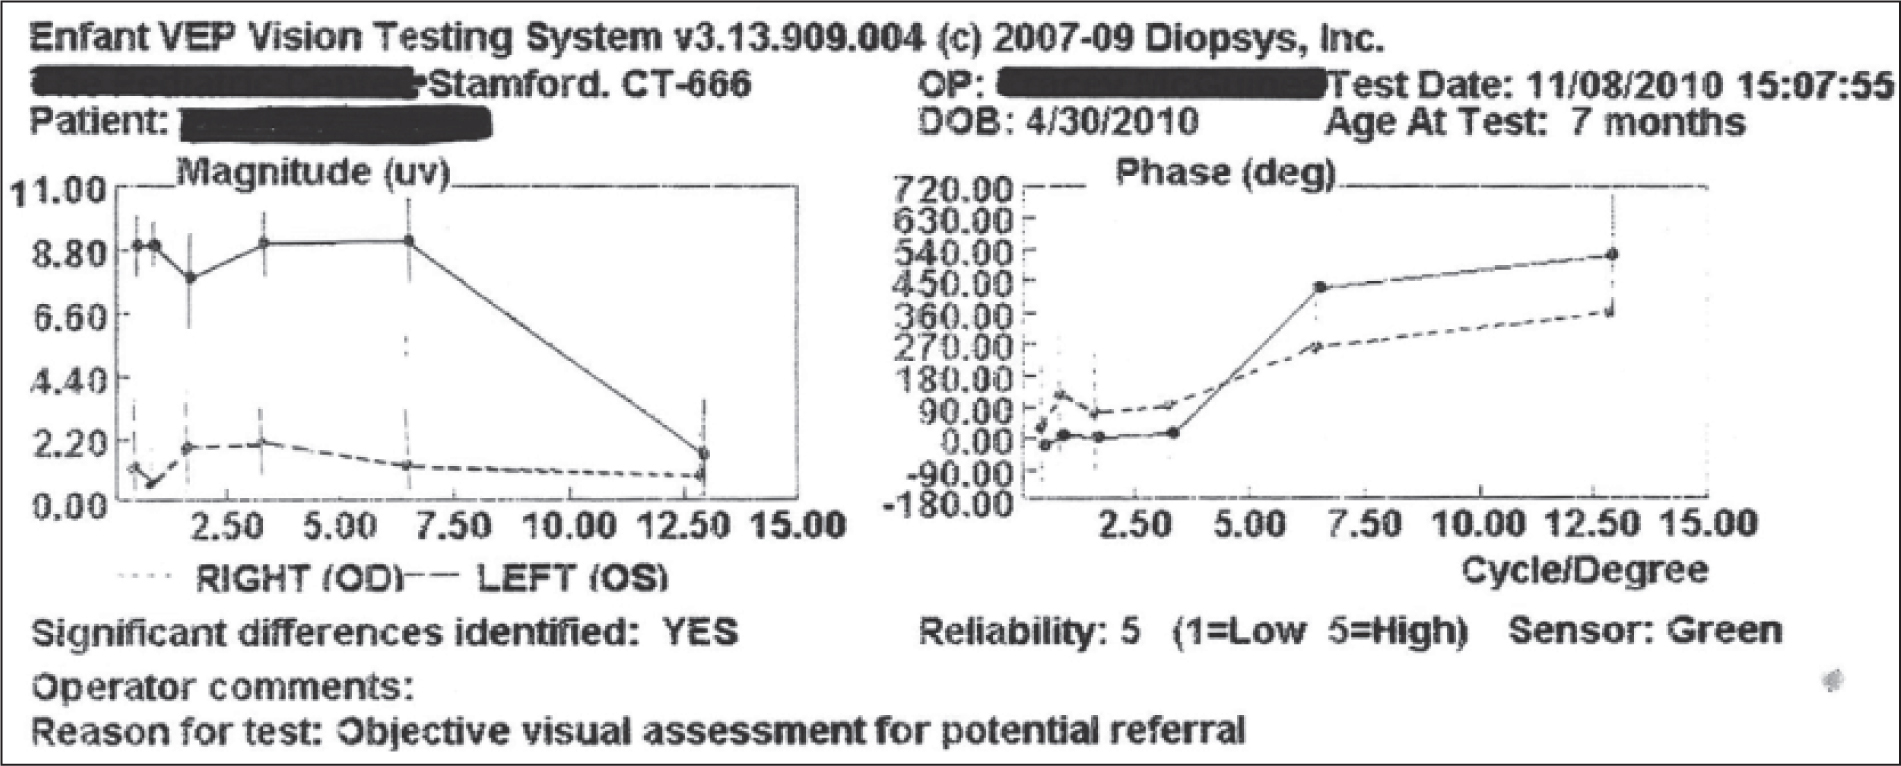 Printout from Diopsys Enfant Vision Screening System demonstrating the magnitude (left) and phase (right) of the steady state visual-evoked potential (VEP) for the right and left eyes of the first patient. Magnitude and phase parameters were calculated from the VEP responses at each of the six spatial frequencies (from 0.4 to 12.9 cycles per degree). The patient had a normal magnitude response at the various spatial frequencies for the left eye, but no detectable response in the right eye. The high reliability coefficient (5) and the sensor color (green) indicate high validity of the test result.